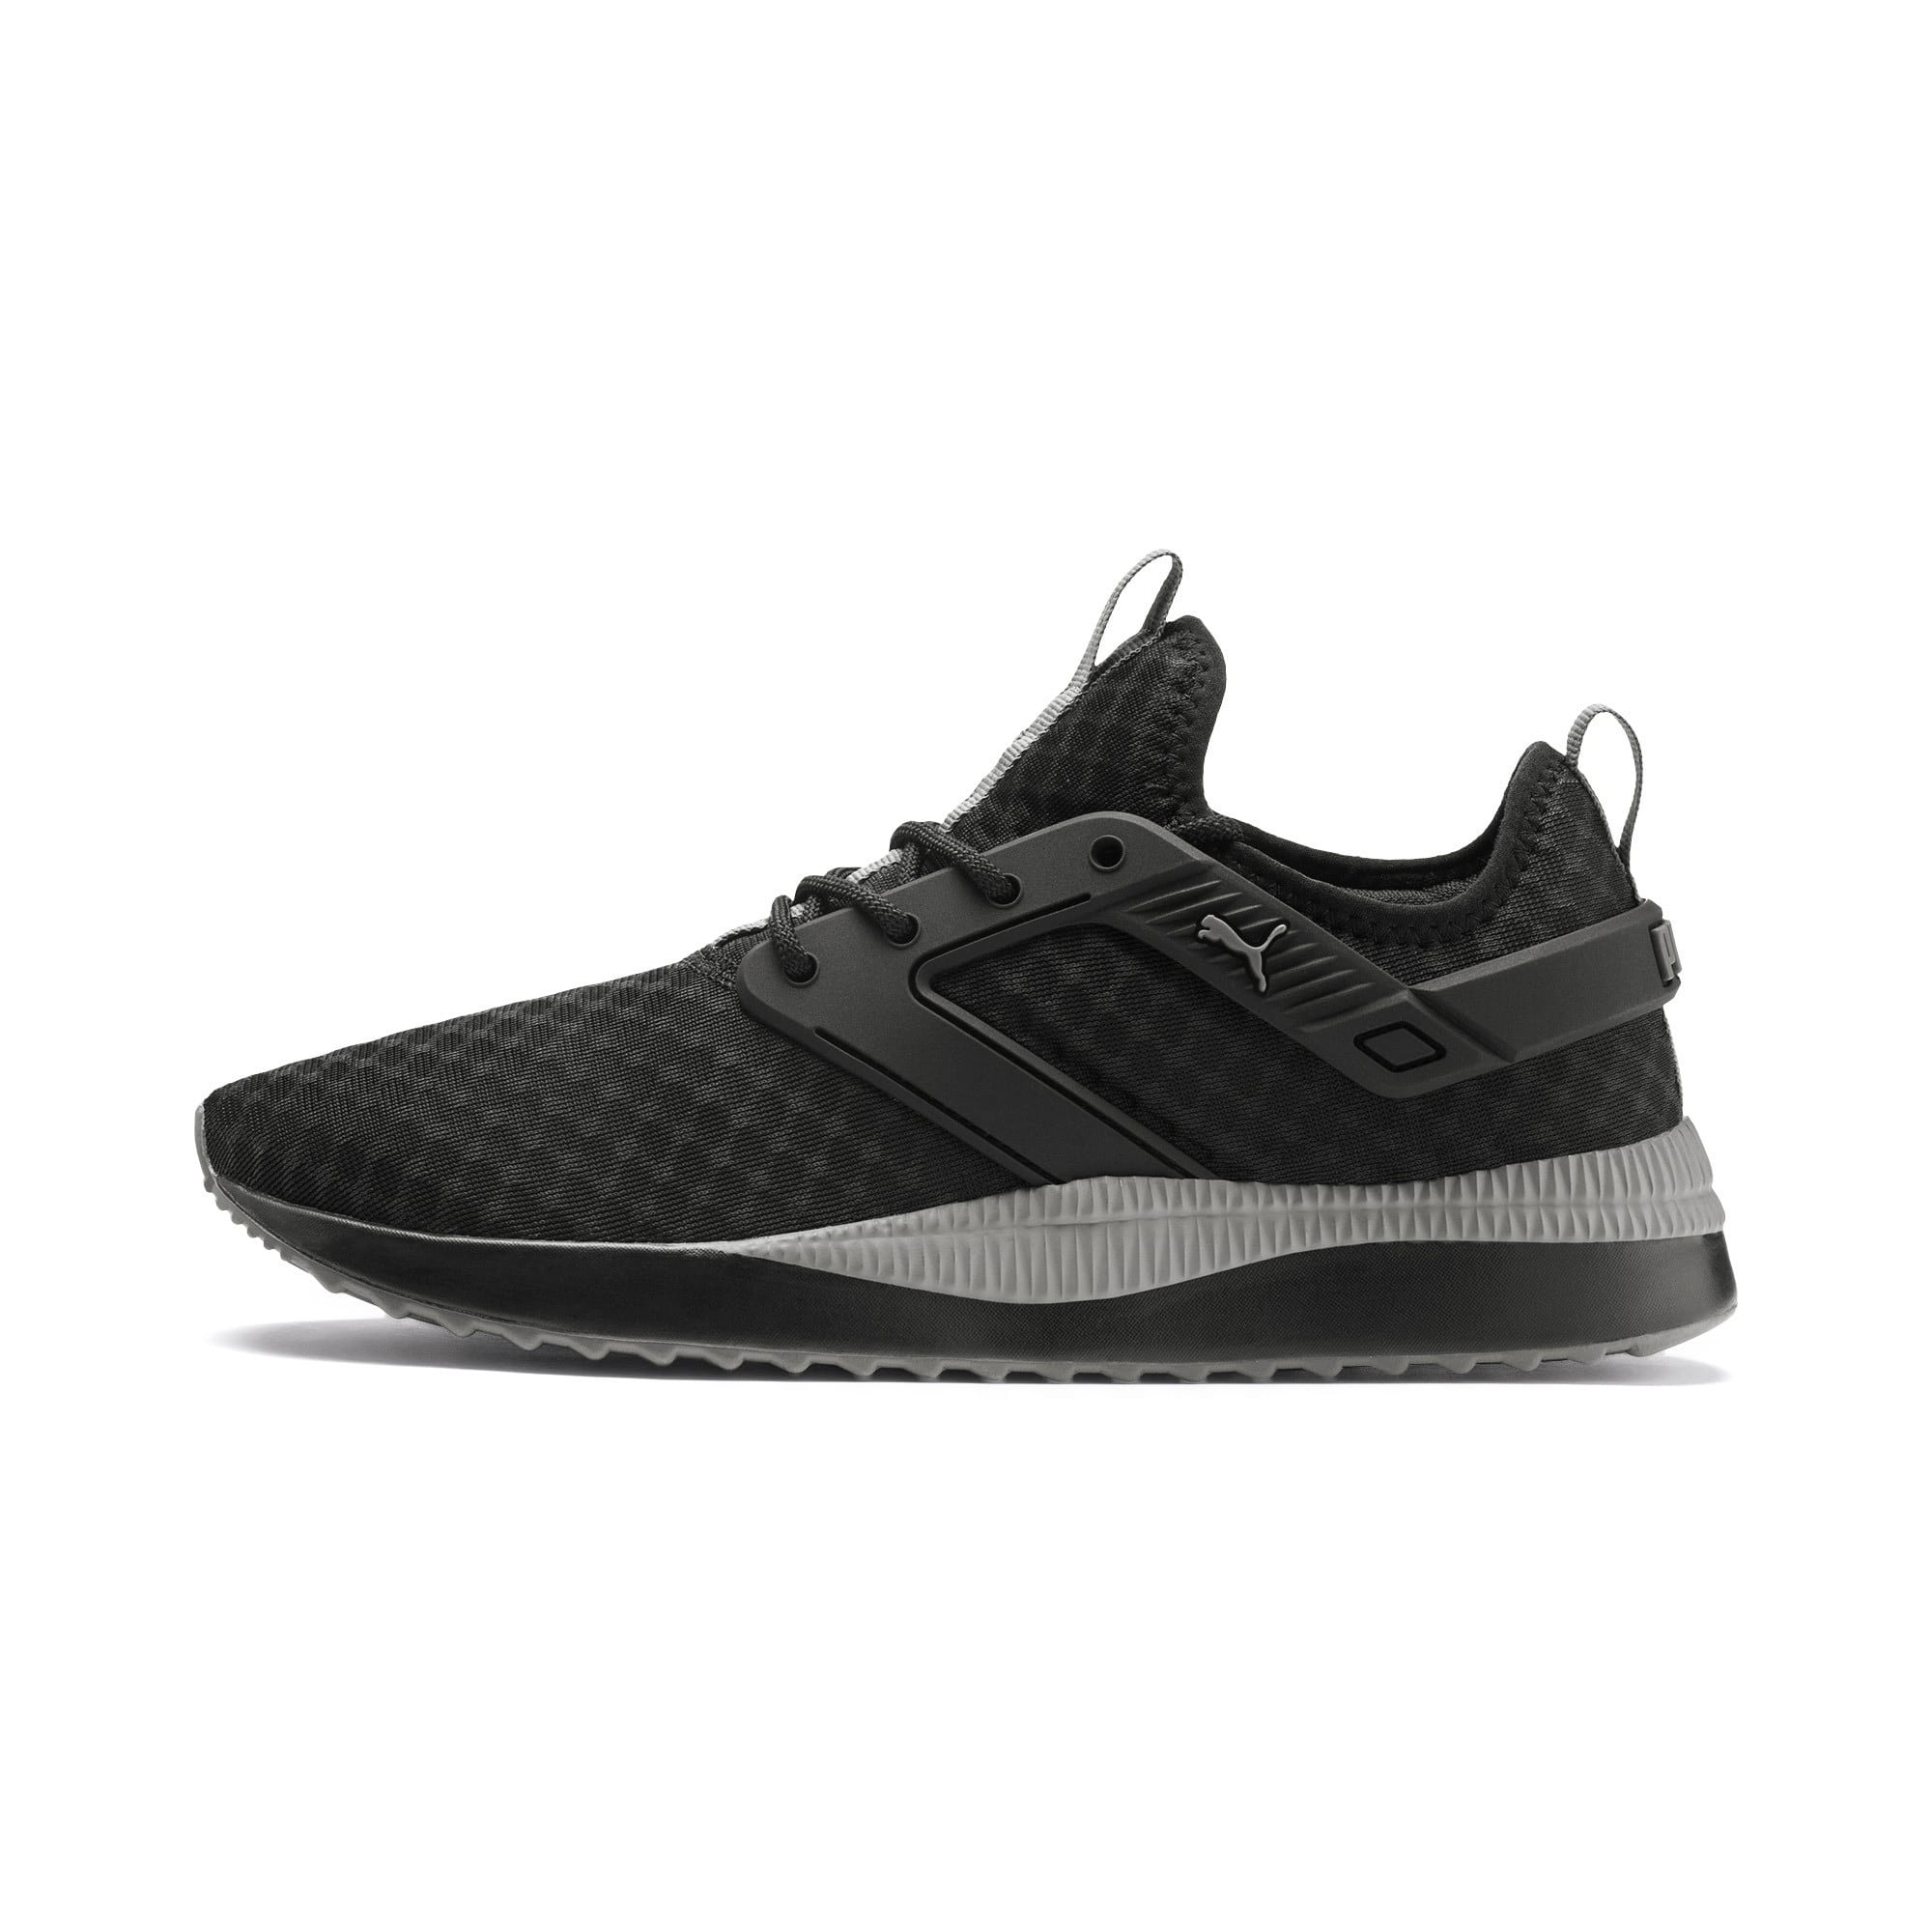 Thumbnail 1 of Pacer Next Excel Core Sneakers, Puma Black-Charcoal Gray, medium